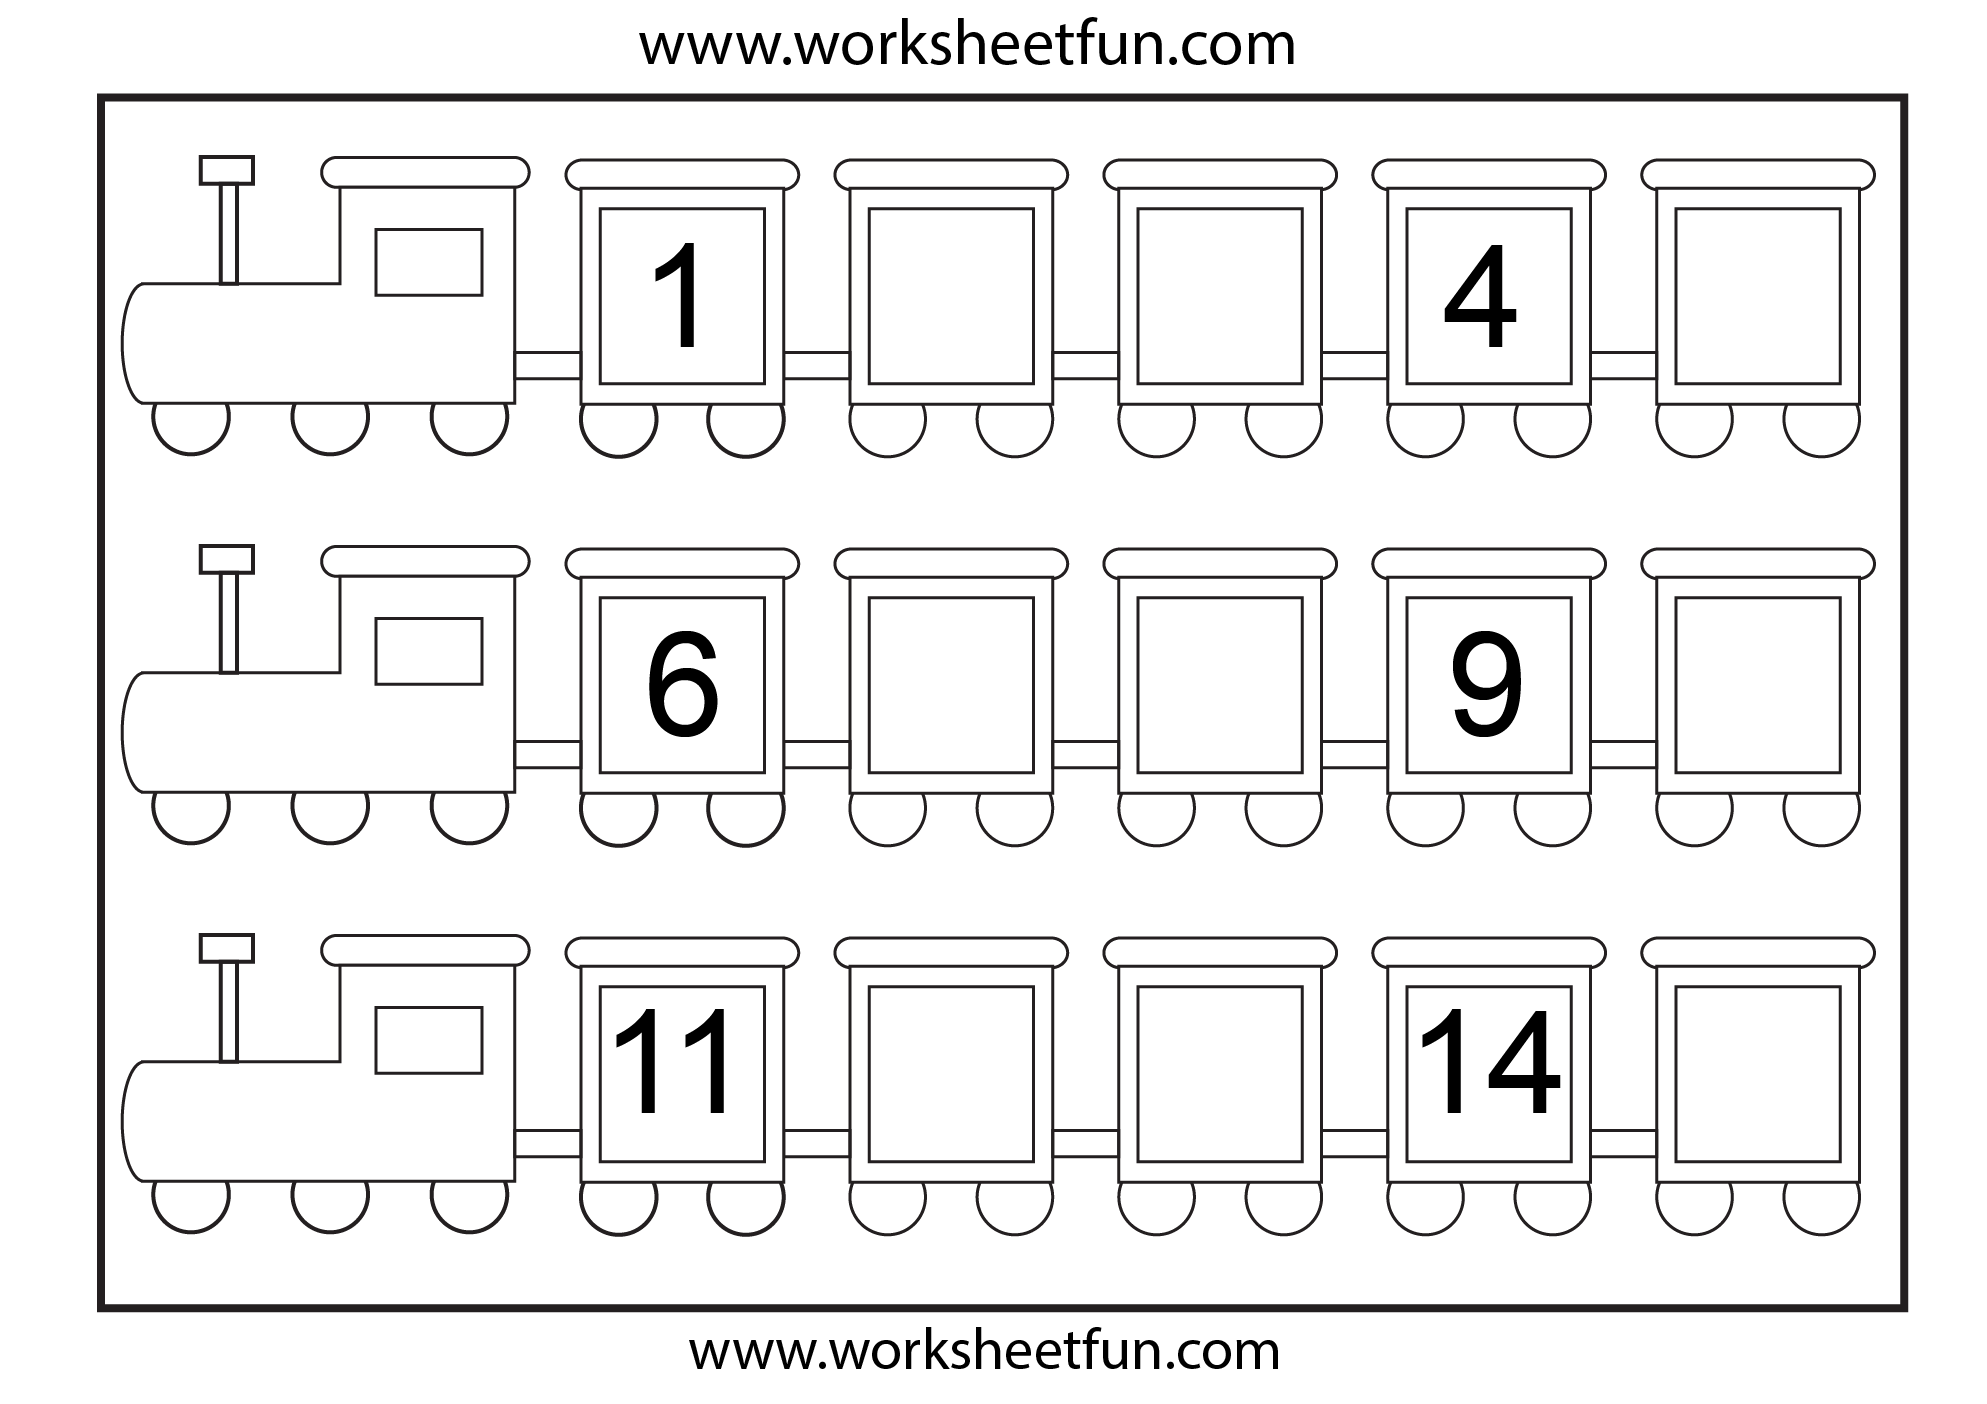 worksheet Find The Missing Number Worksheet 1000 images about worksheets on pinterest color by numbers preschool and literacy worksheets